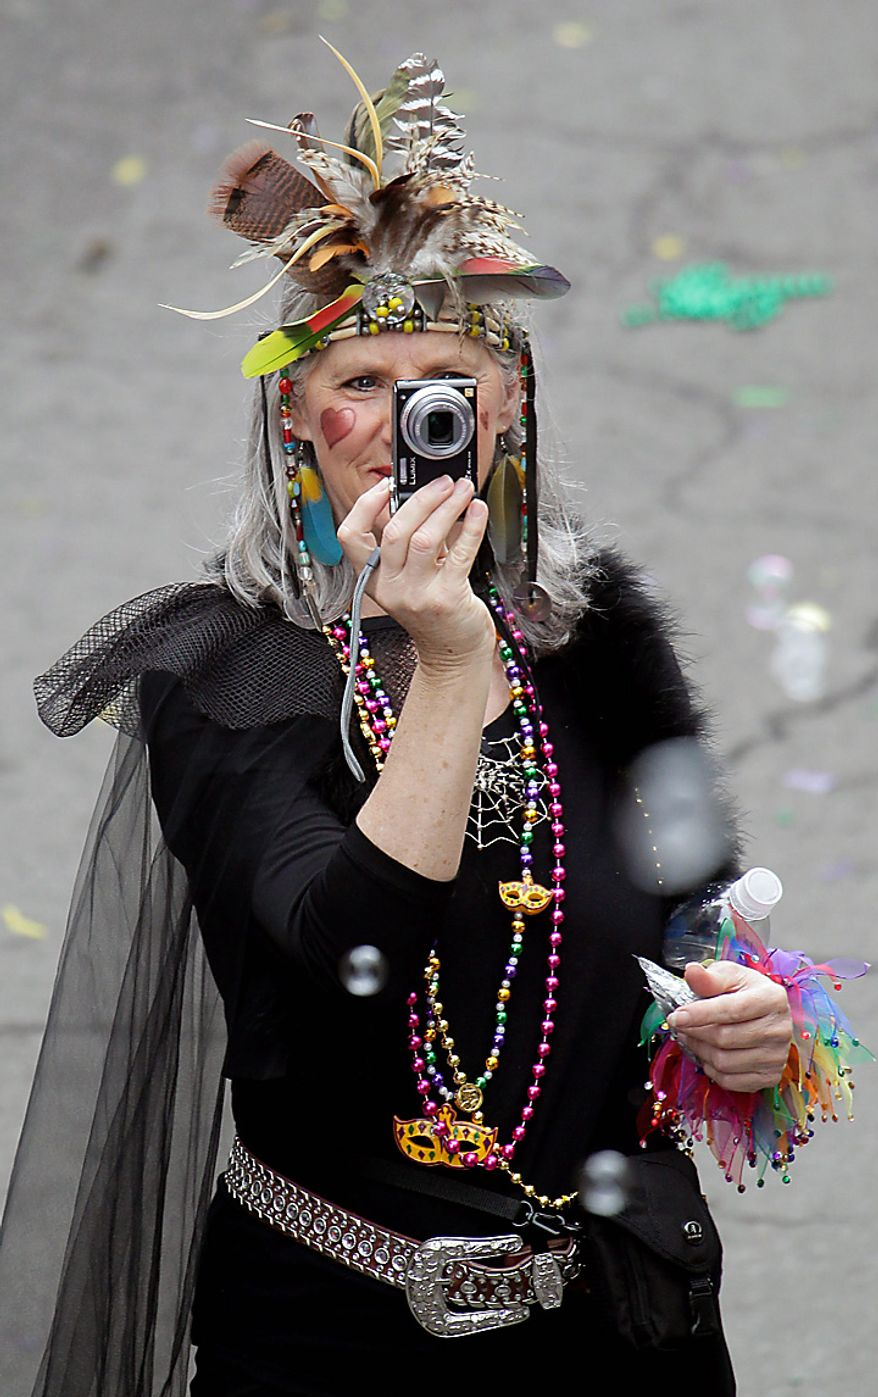 A costumed reveler takes a photograph at the Mardi Gras celebration in the French Quarter of New Orleans on Tuesday, March 8, 2011.  (AP Photo/Bill Haber)